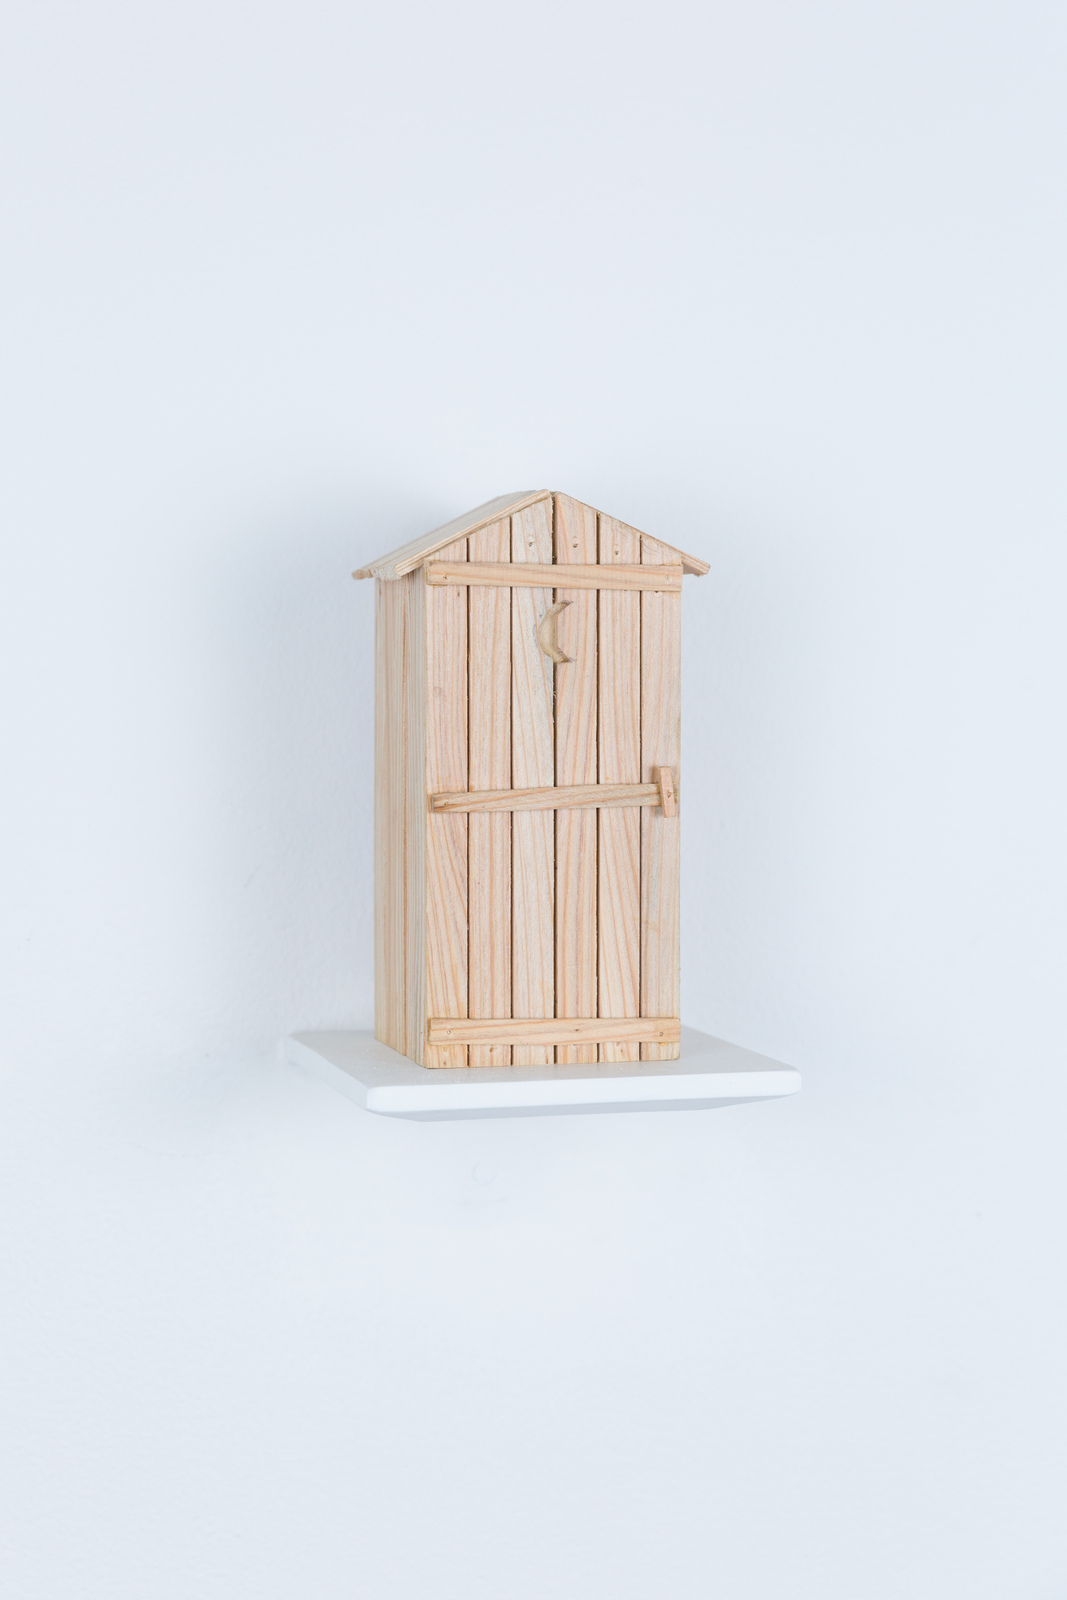 Dylan Cale Jones_Little Outhouse 1